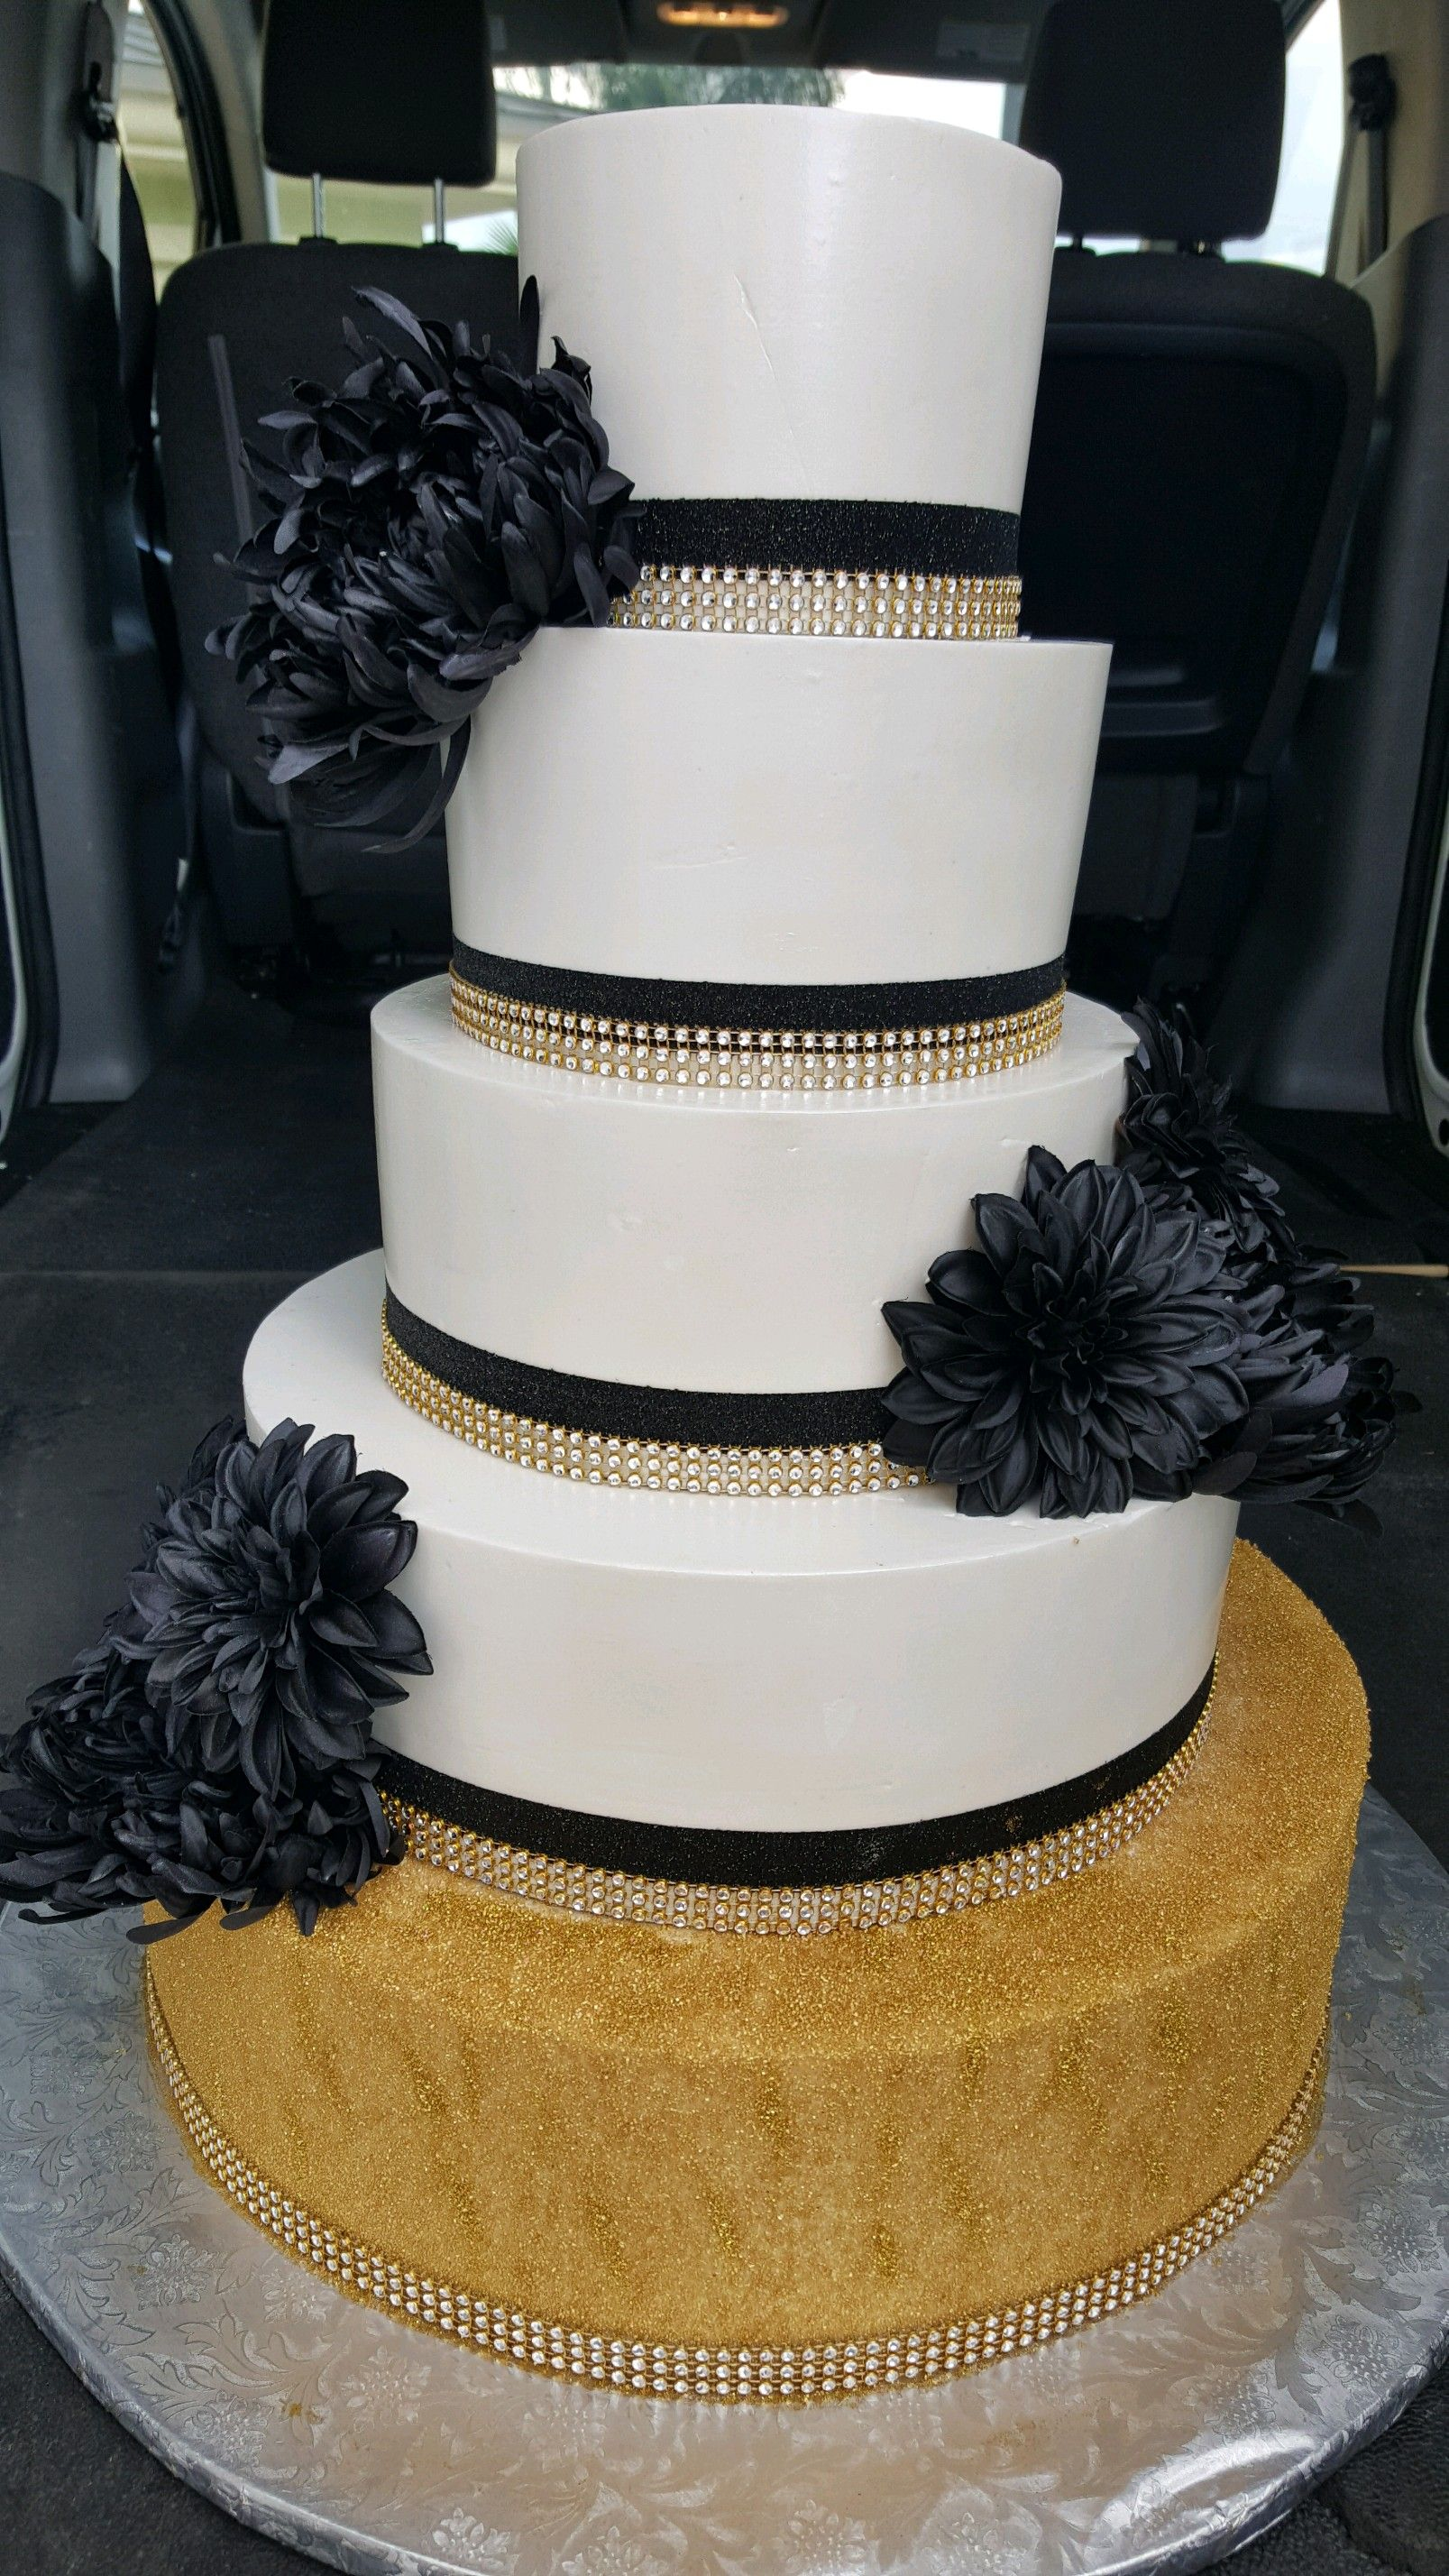 BLACK WHITE GOLD WEDDING CAKE DELIVERY from EL BOLILLO BAKERY in